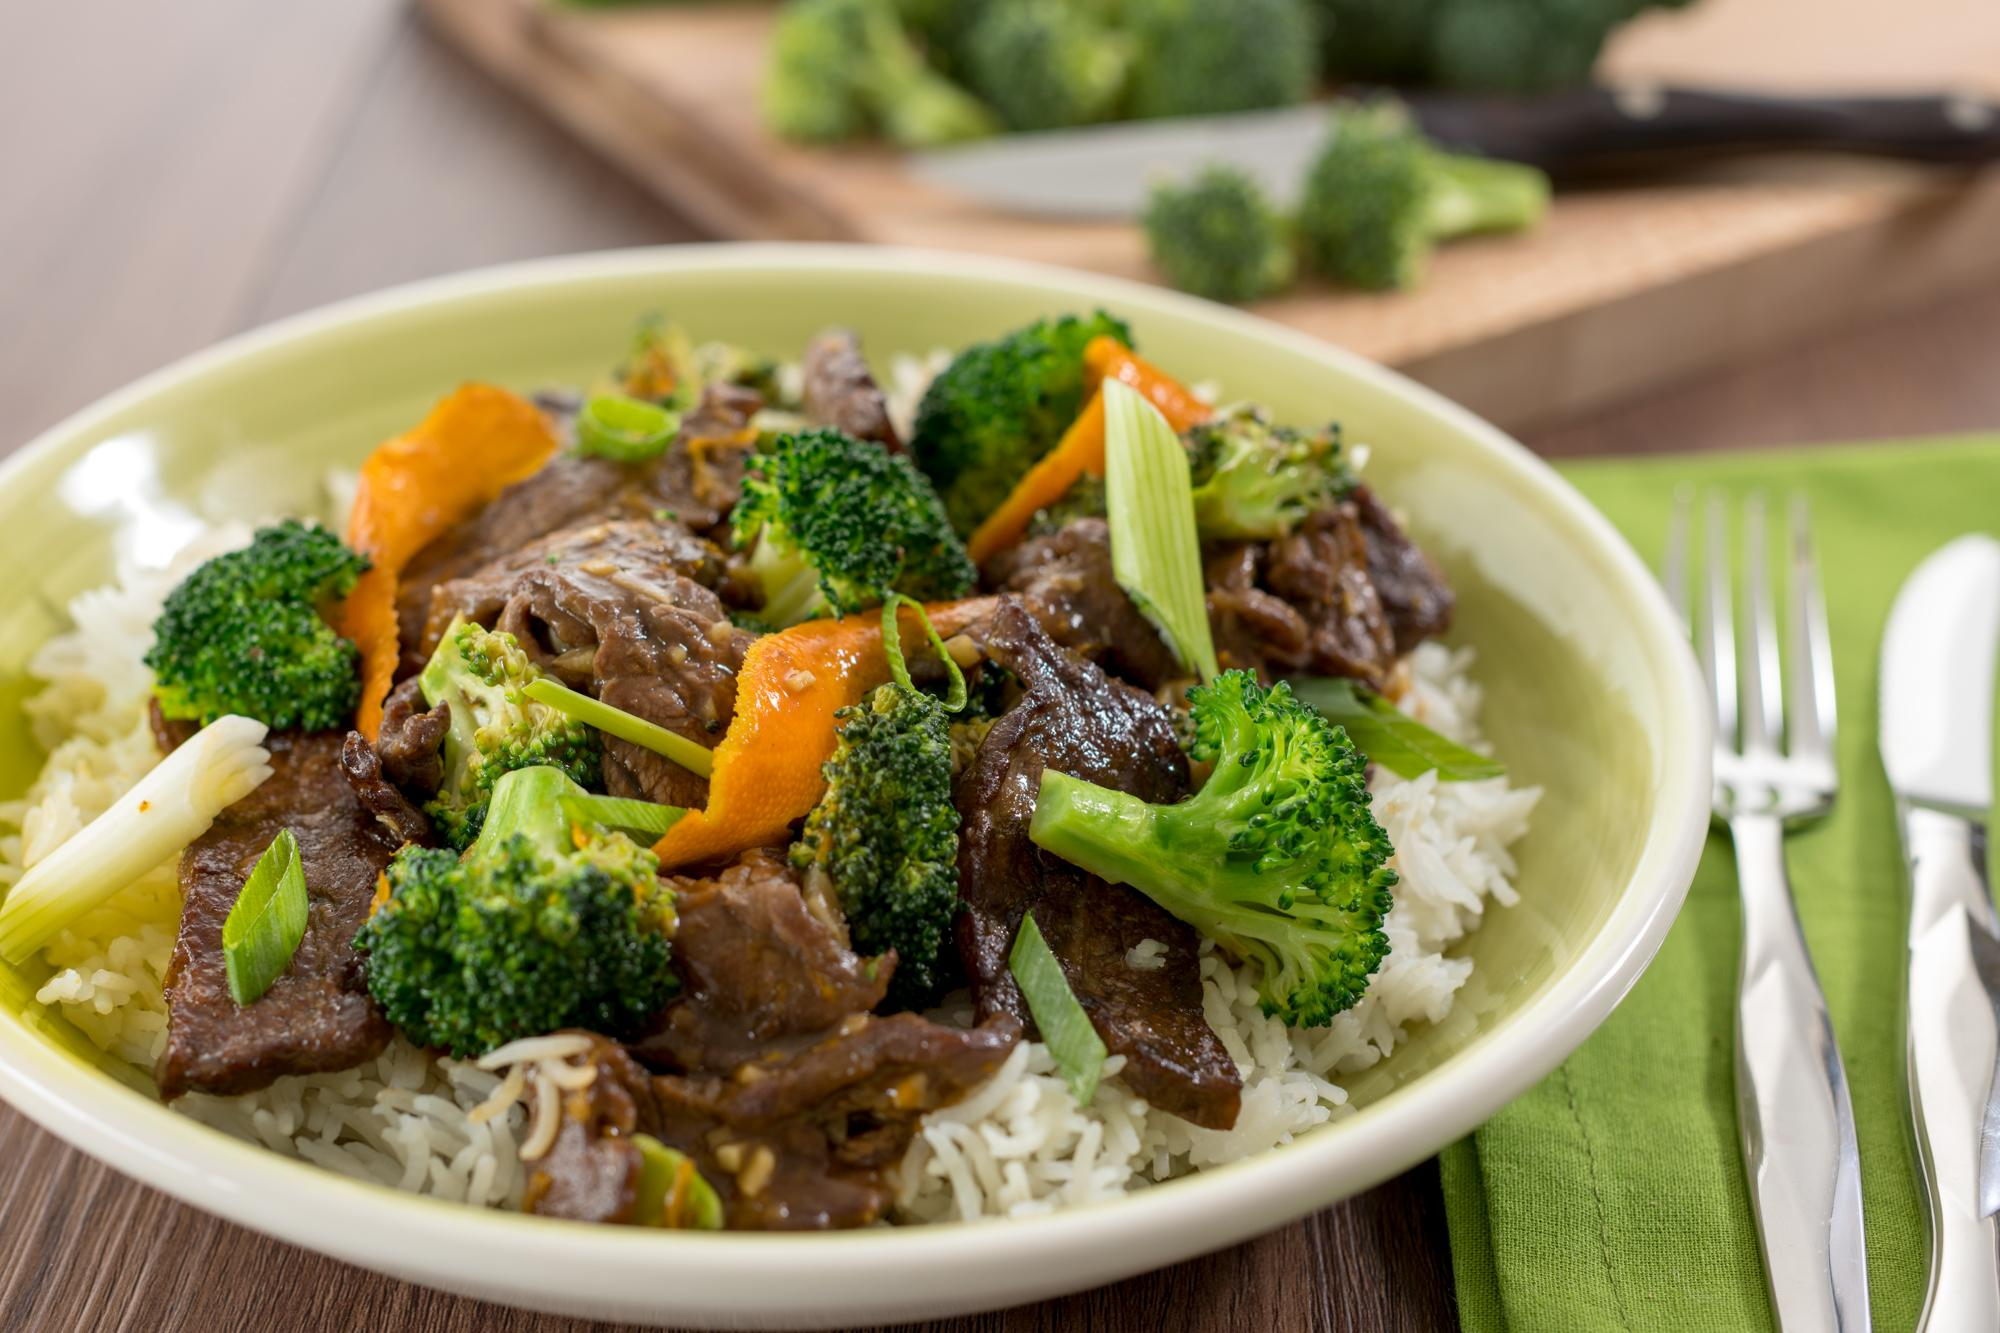 Beef and Broccoli Stir-Fry with Orange Sauce